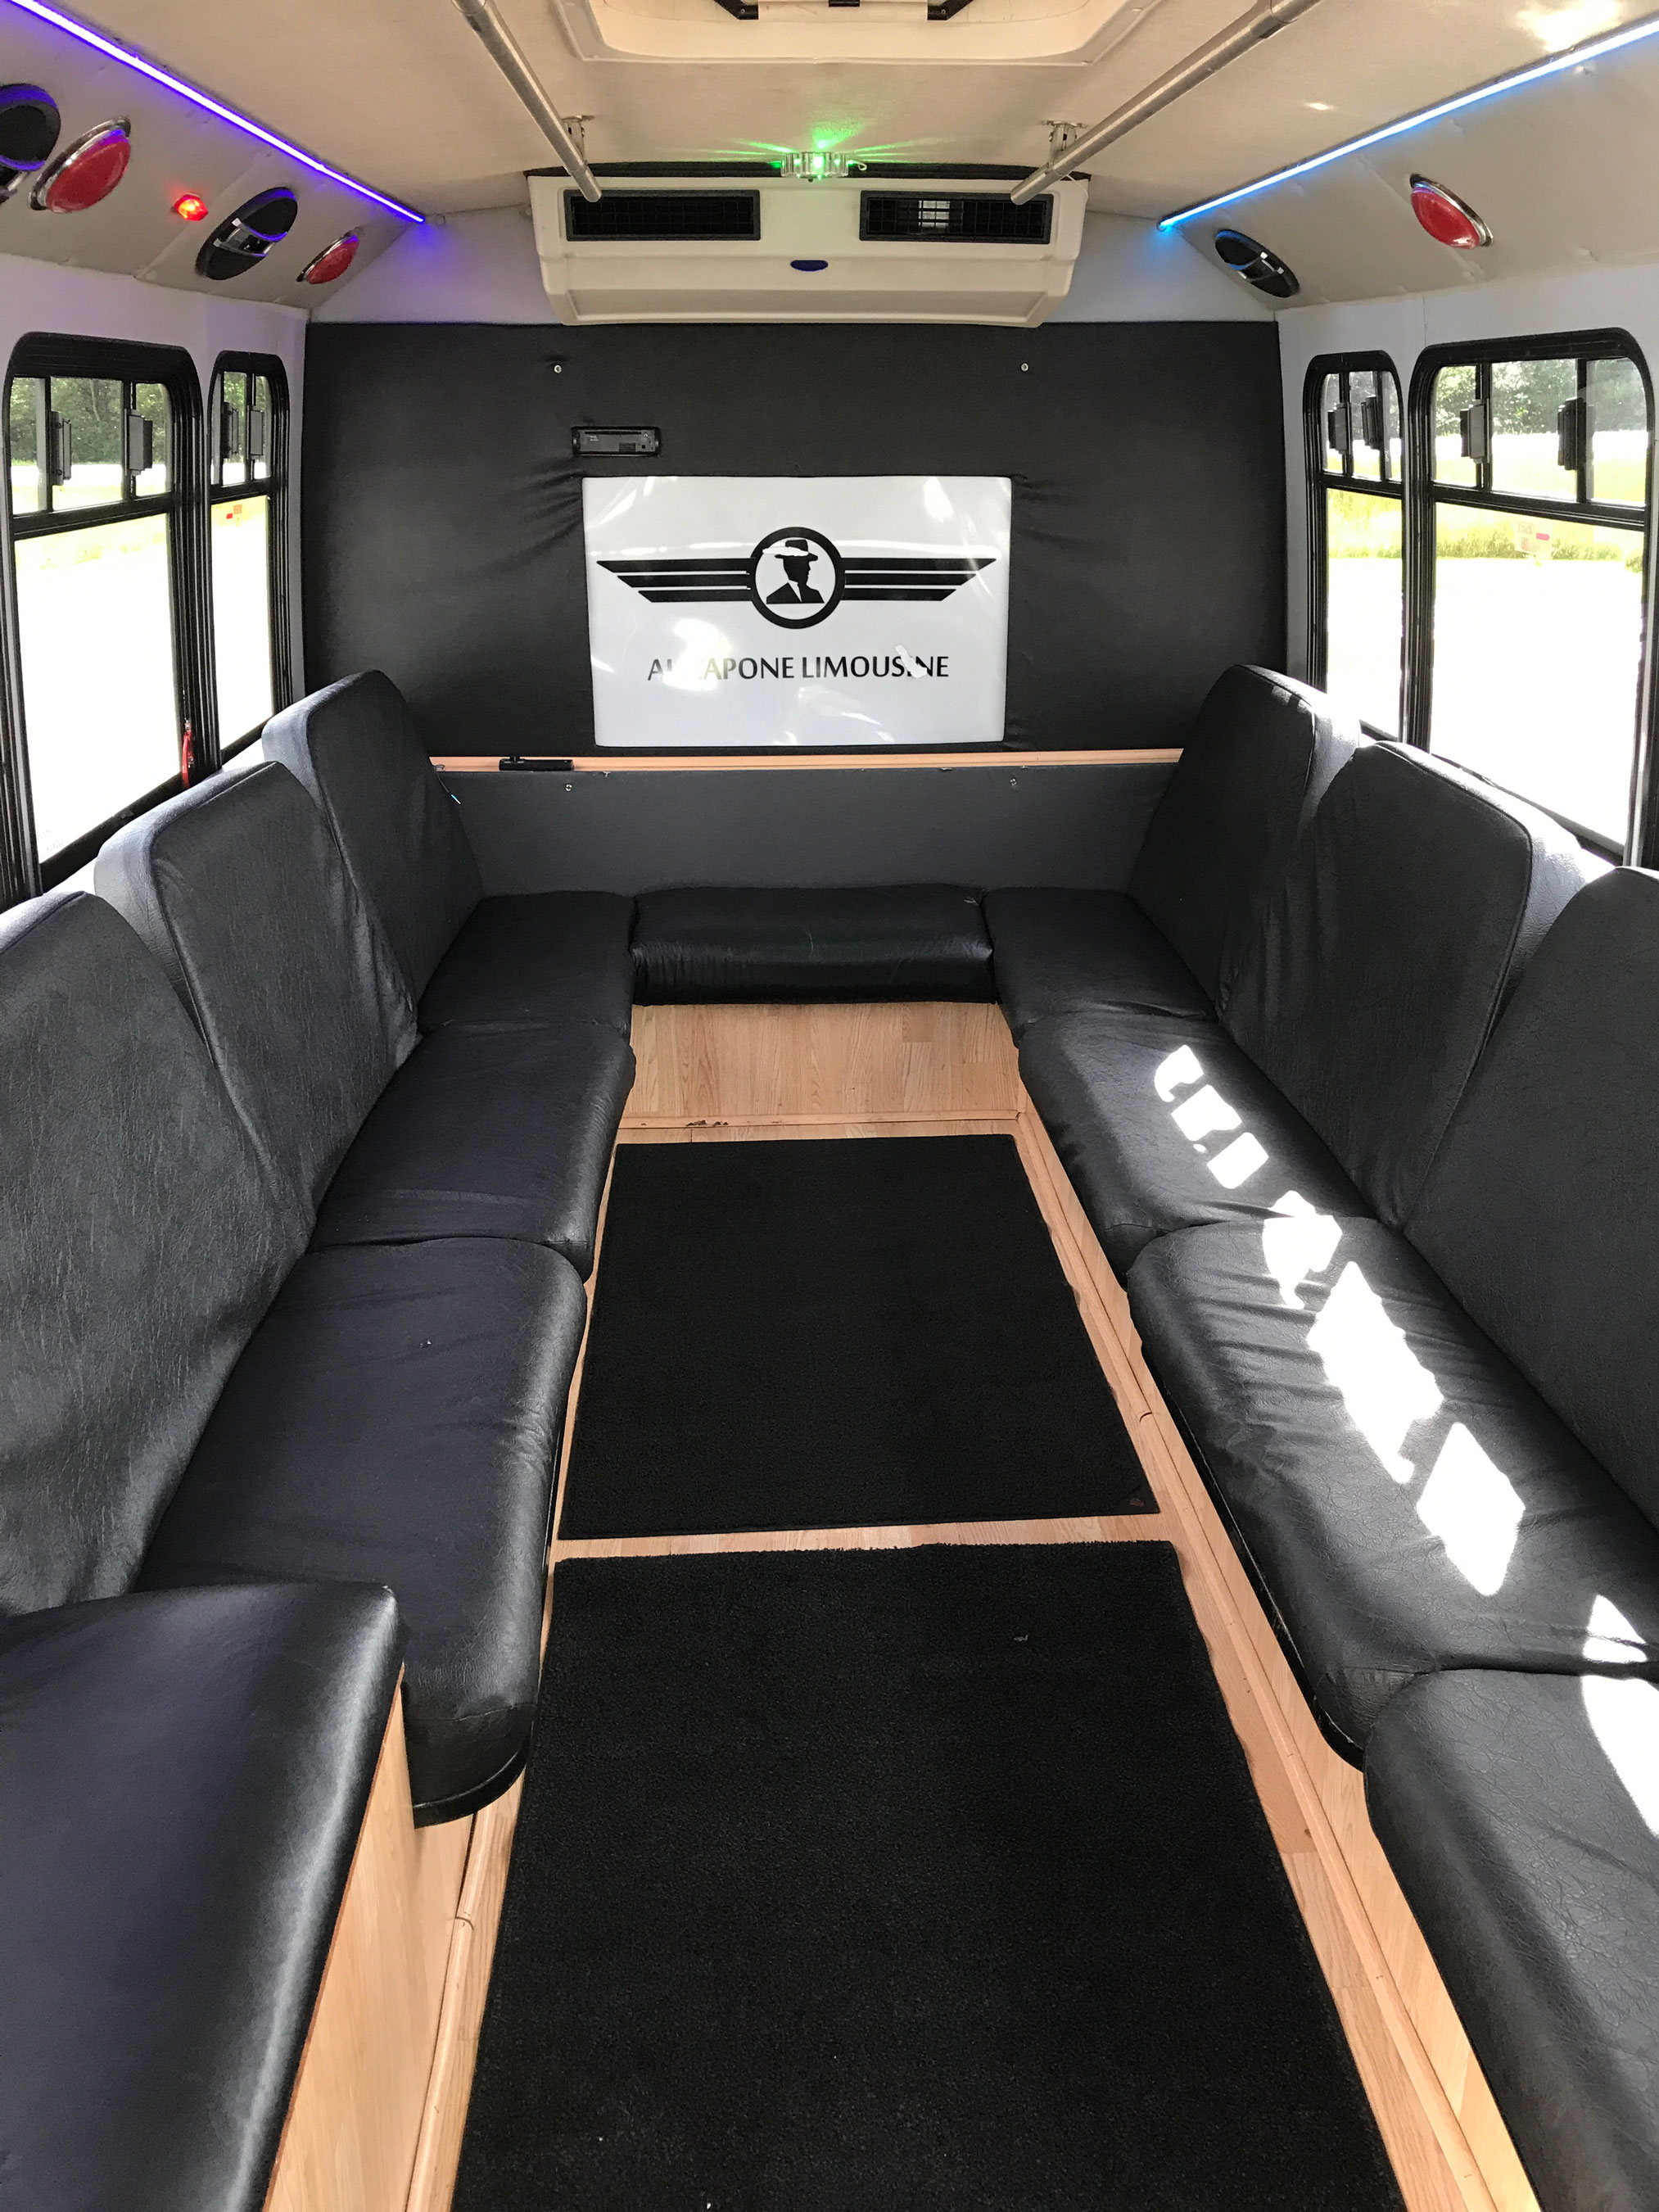 Inside view of large party bus of Al Capone Limousine